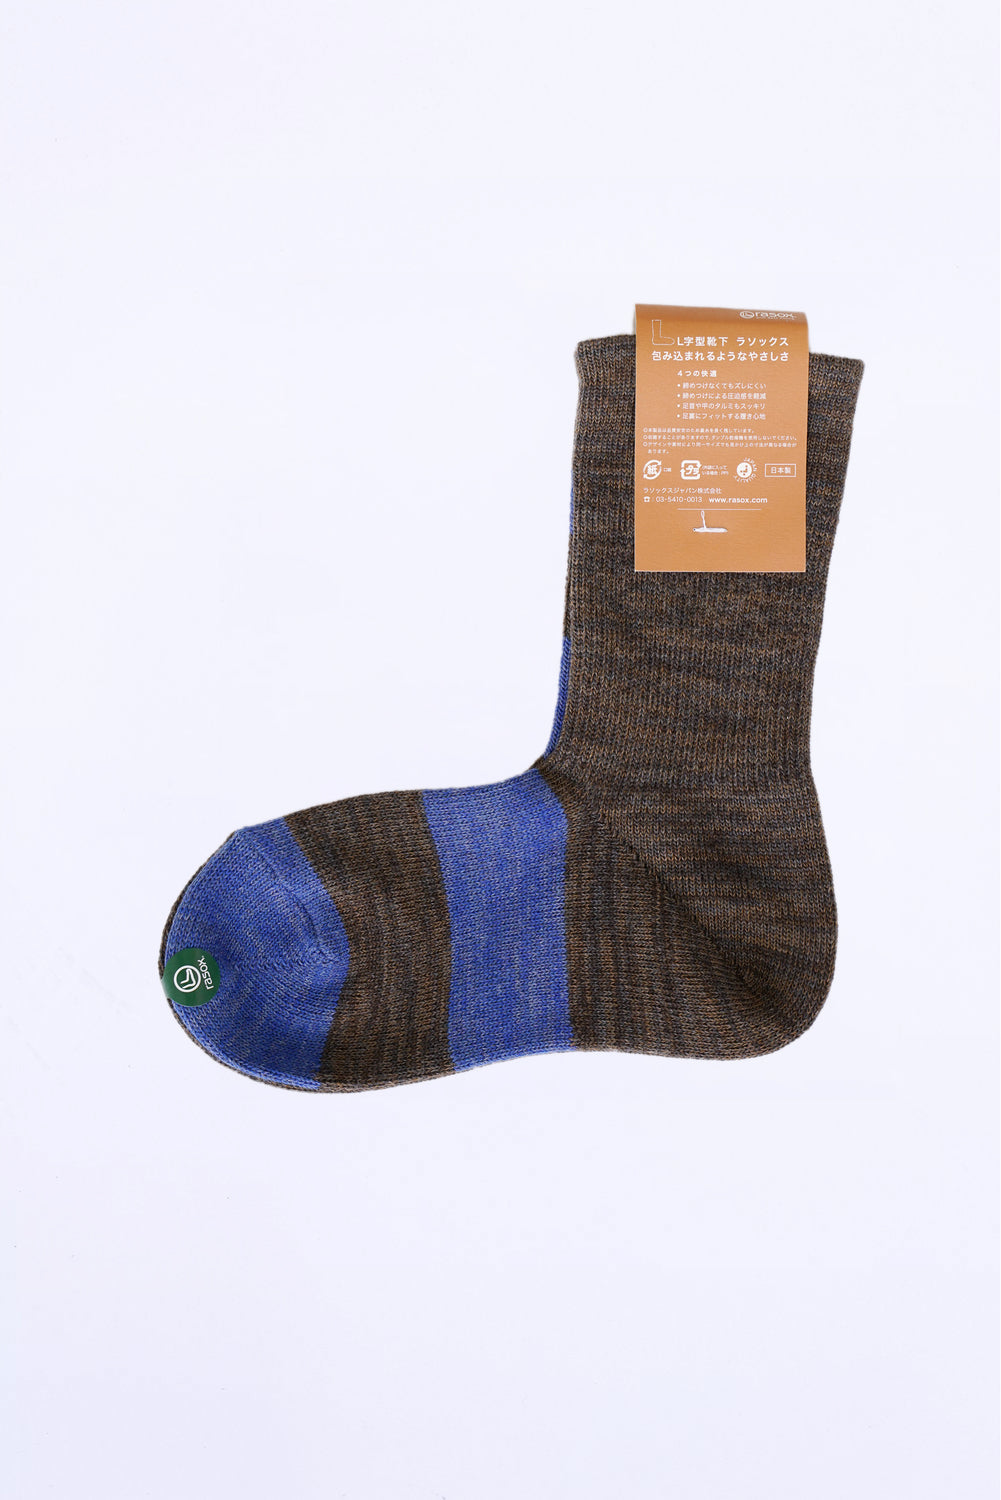 Asymmetry Socks Brown and Blue